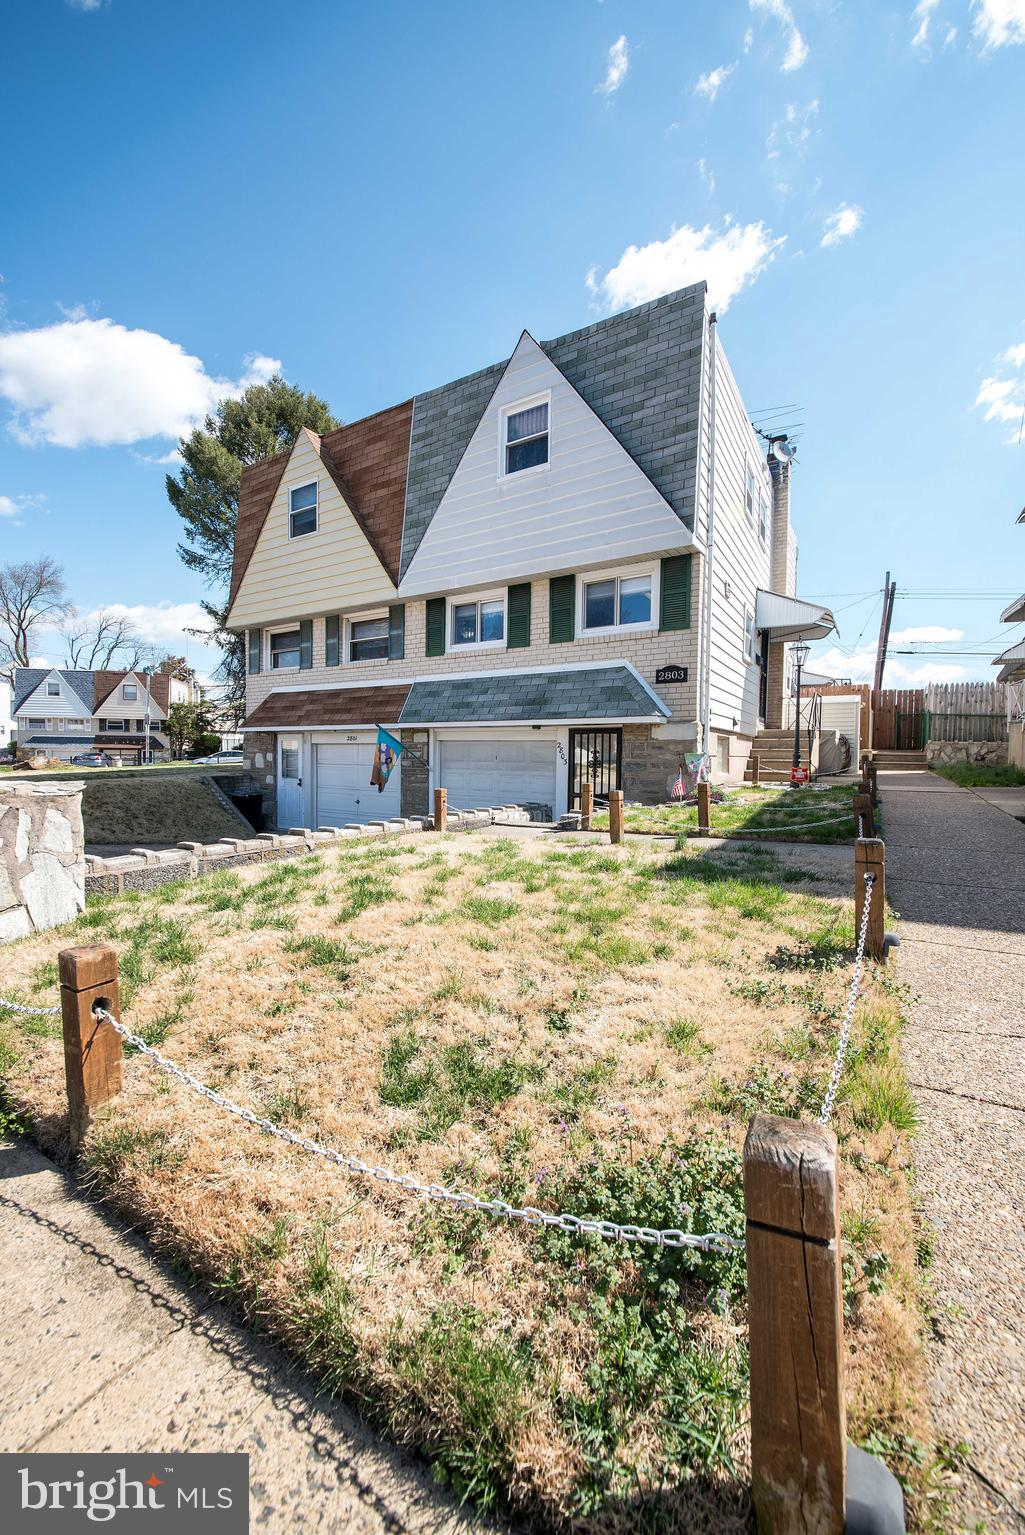 19020 3 Bedroom Home For Sale